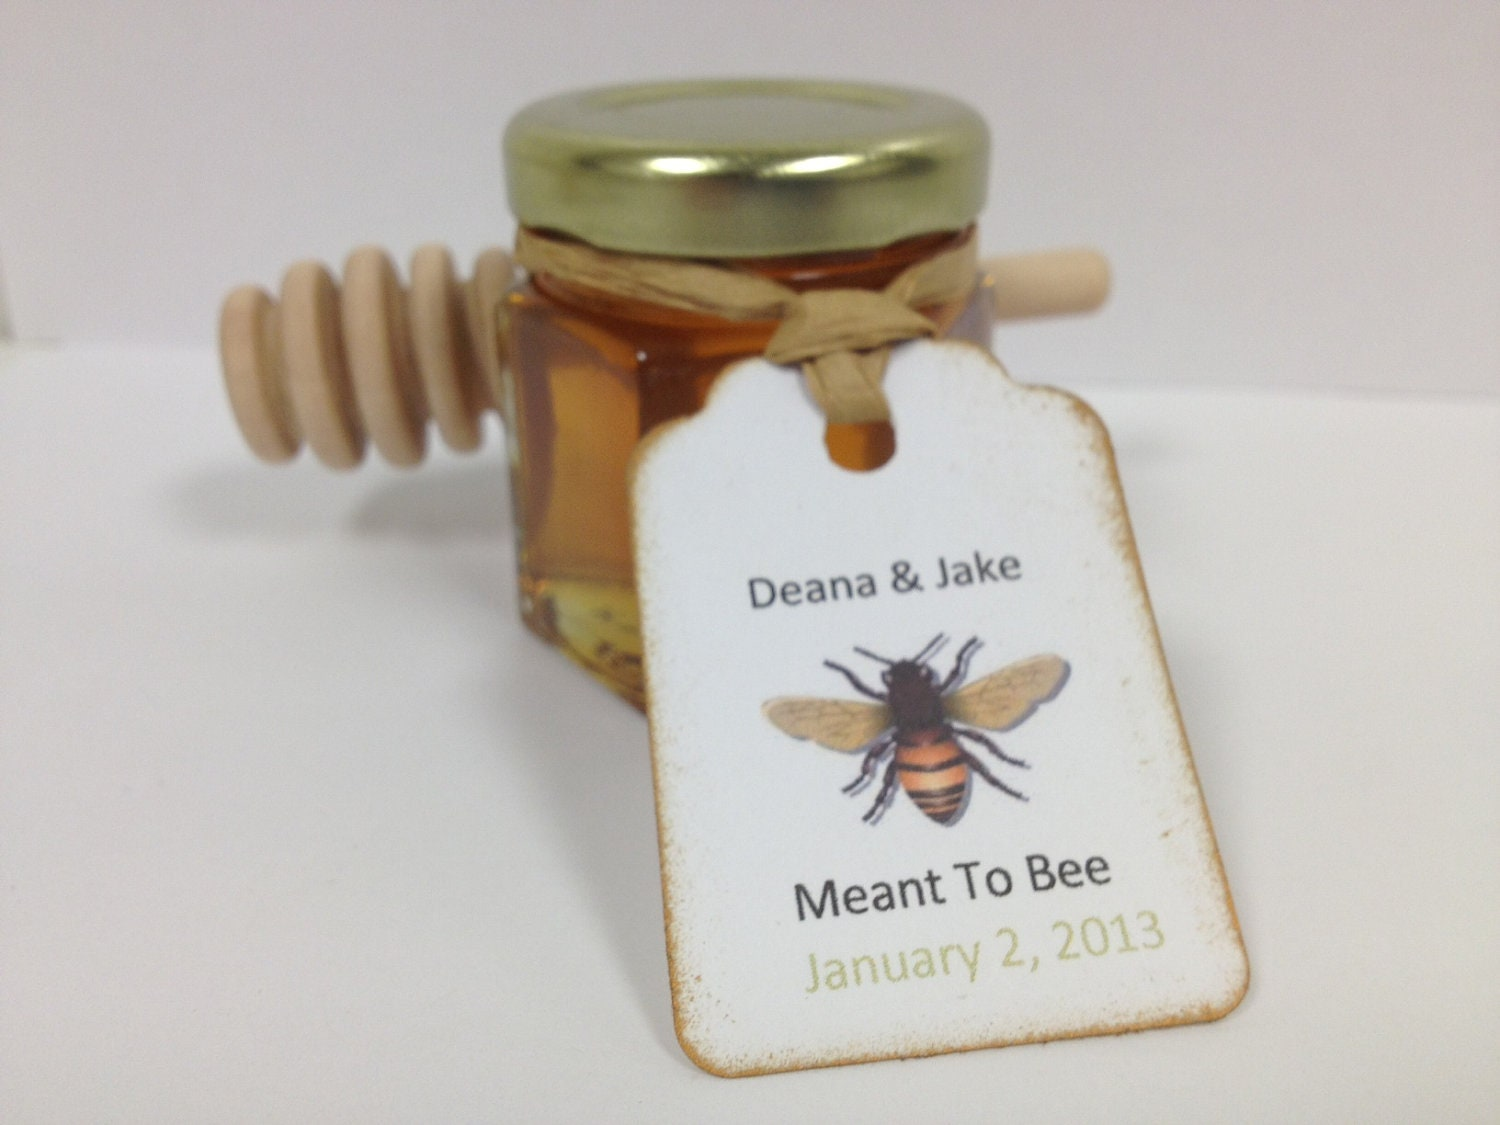 70qty meant to bee honey wedding shower favors with dipper for Honey bee wedding favors